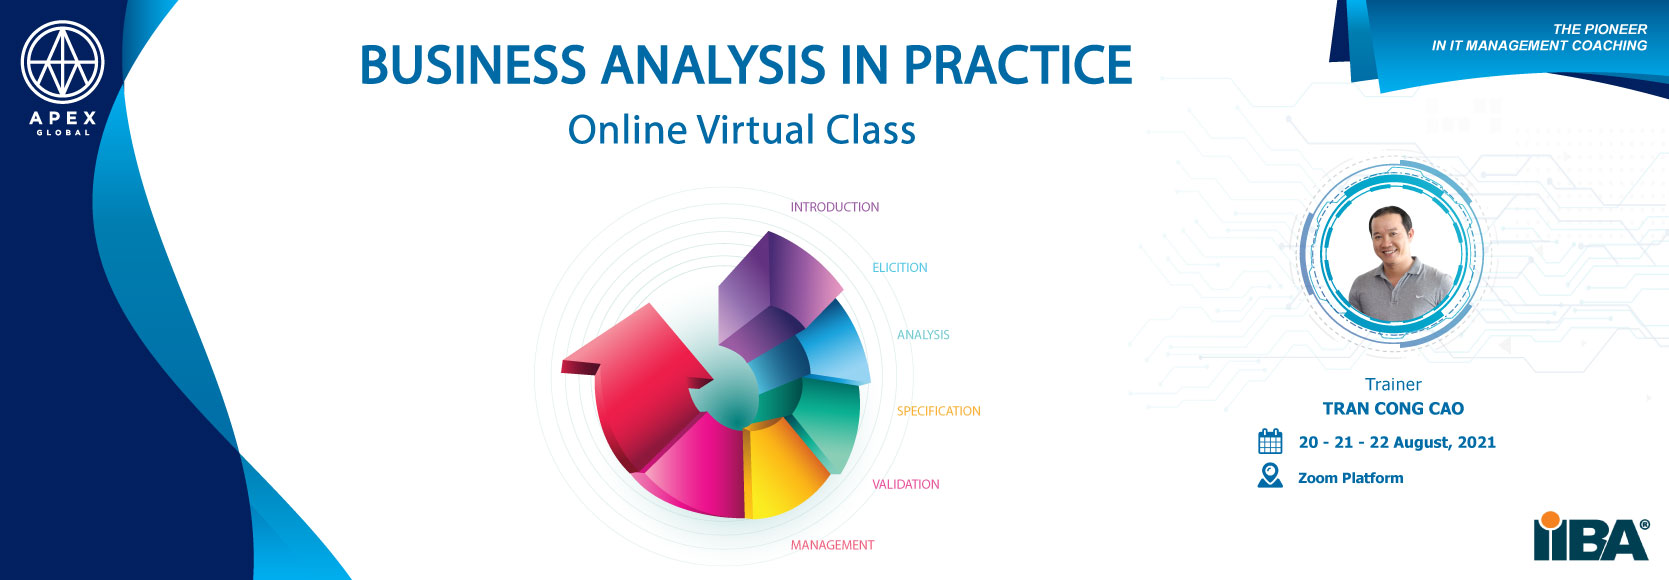 Business-Analysis-In-Practice-Online-Virtual-Class